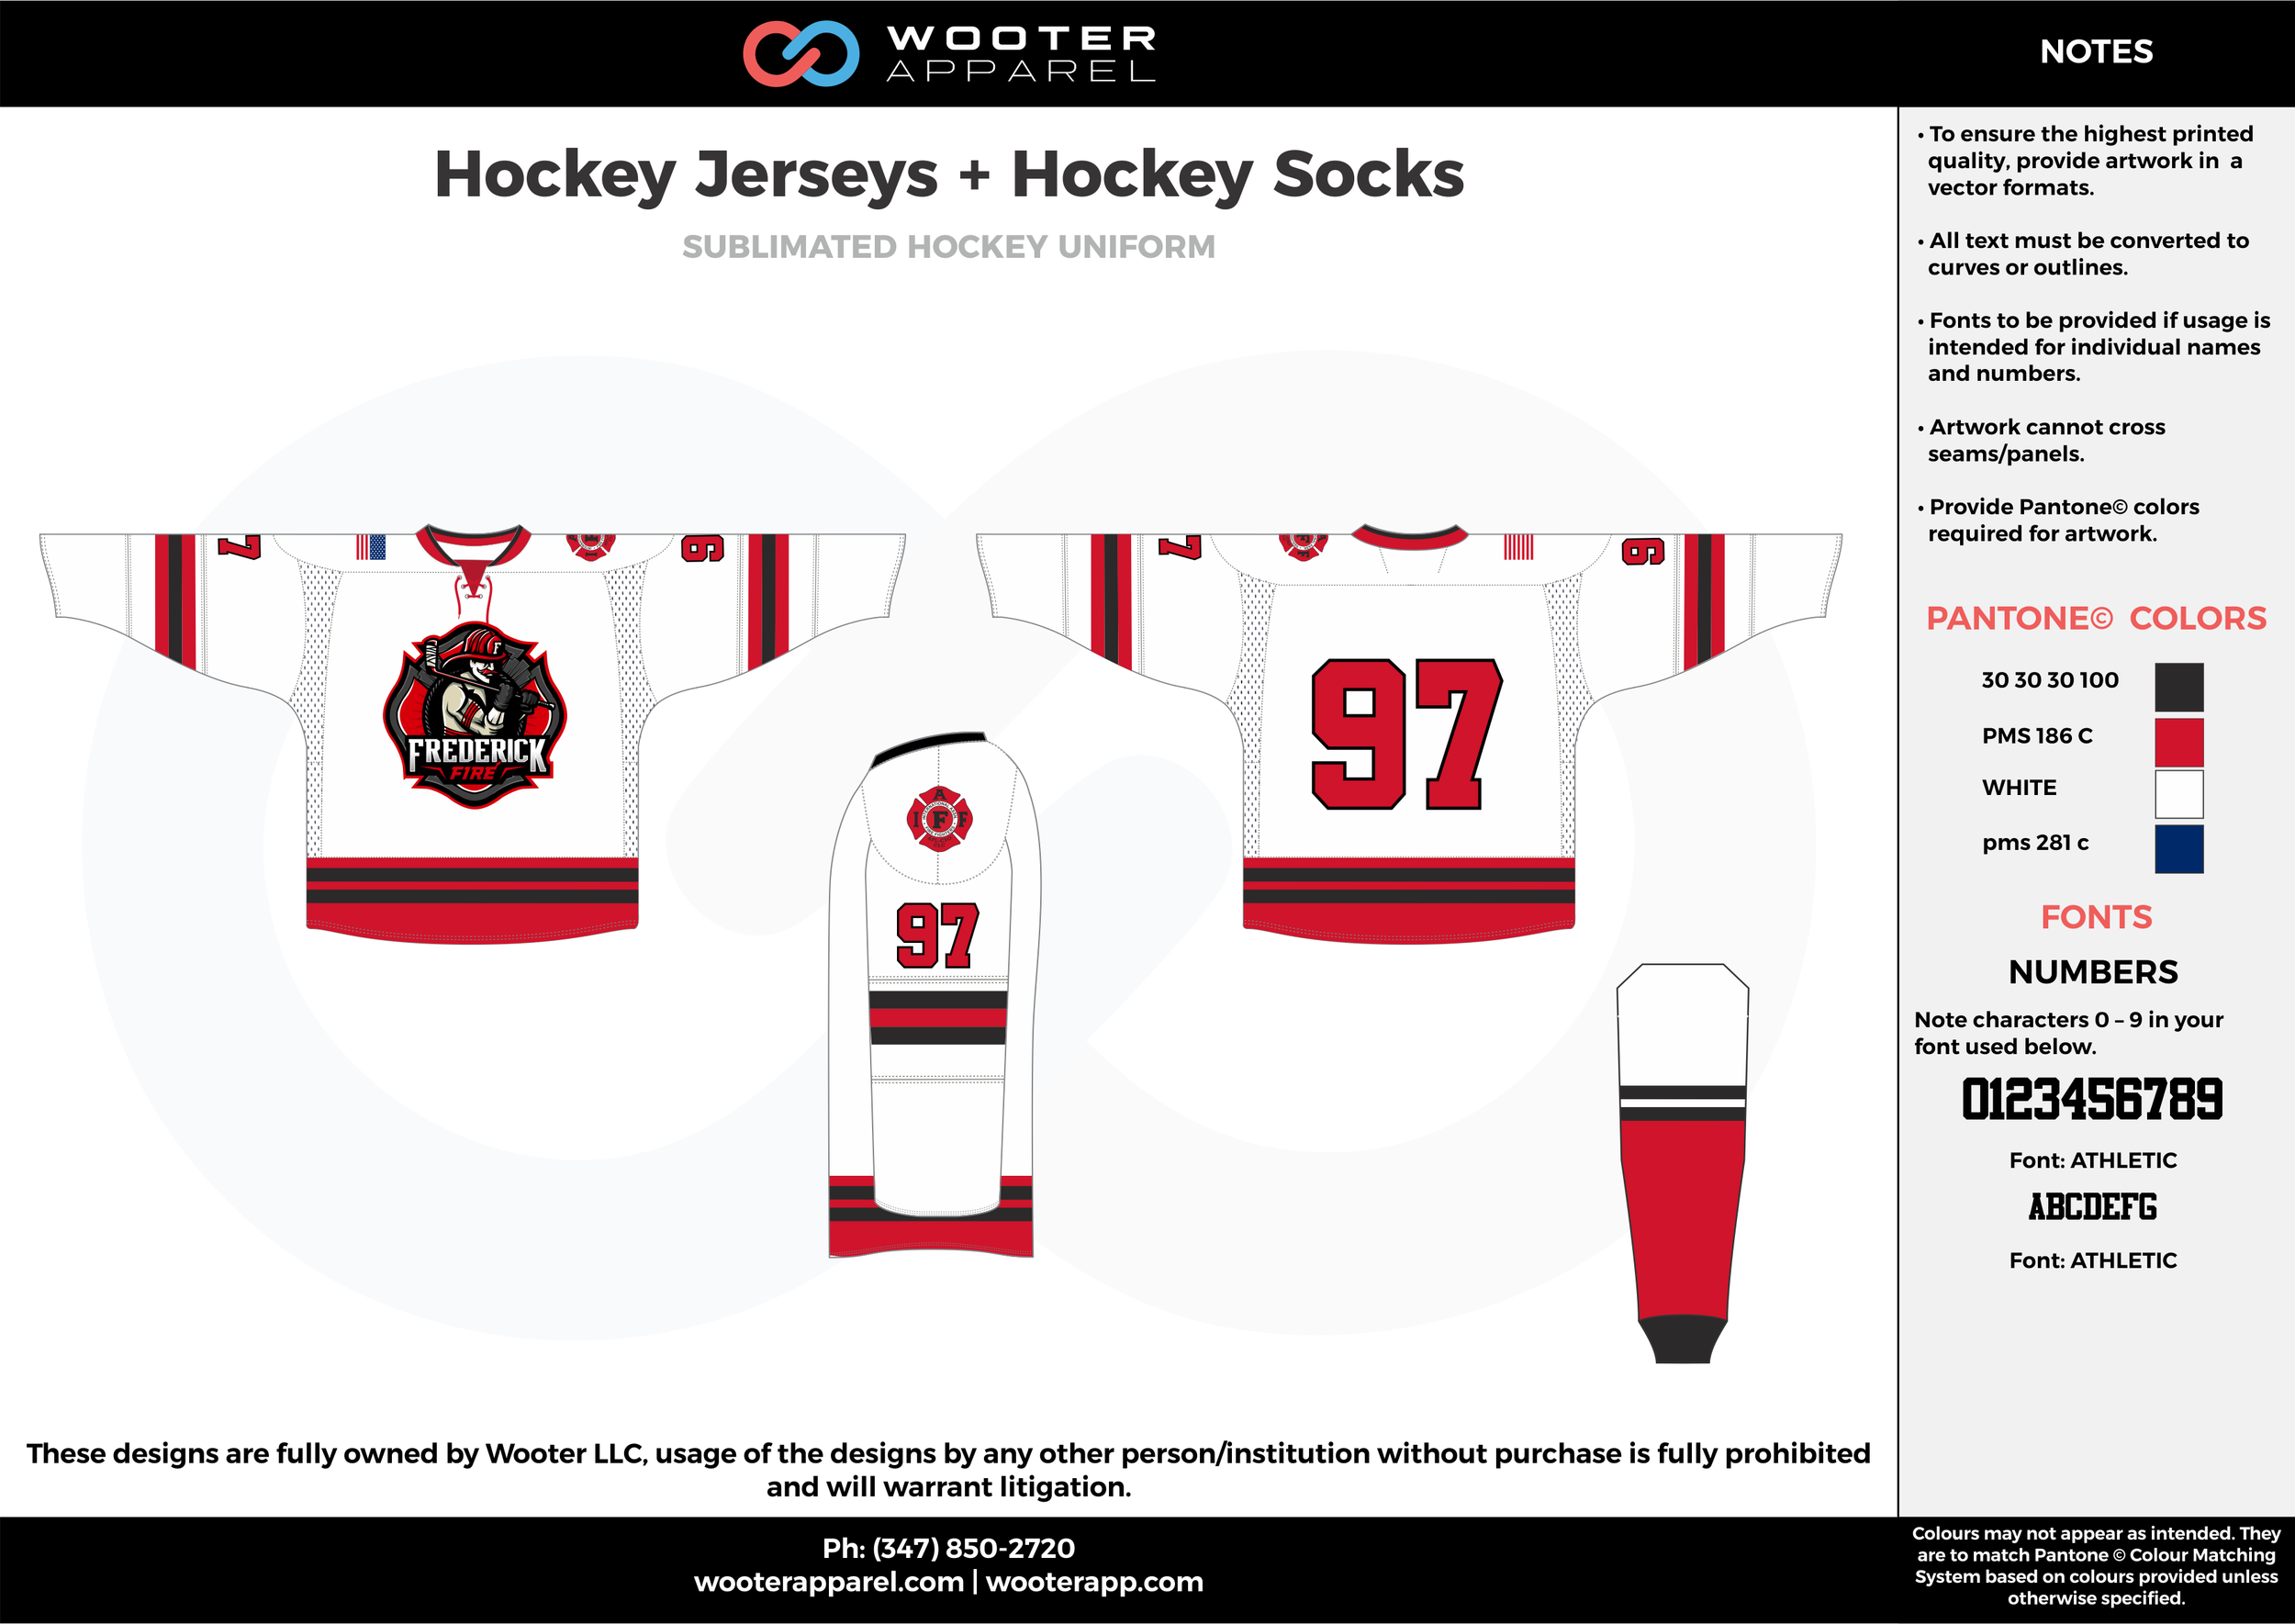 Hockey Jersey + Hockey Socks white red blue black hockey uniforms jerseys socks